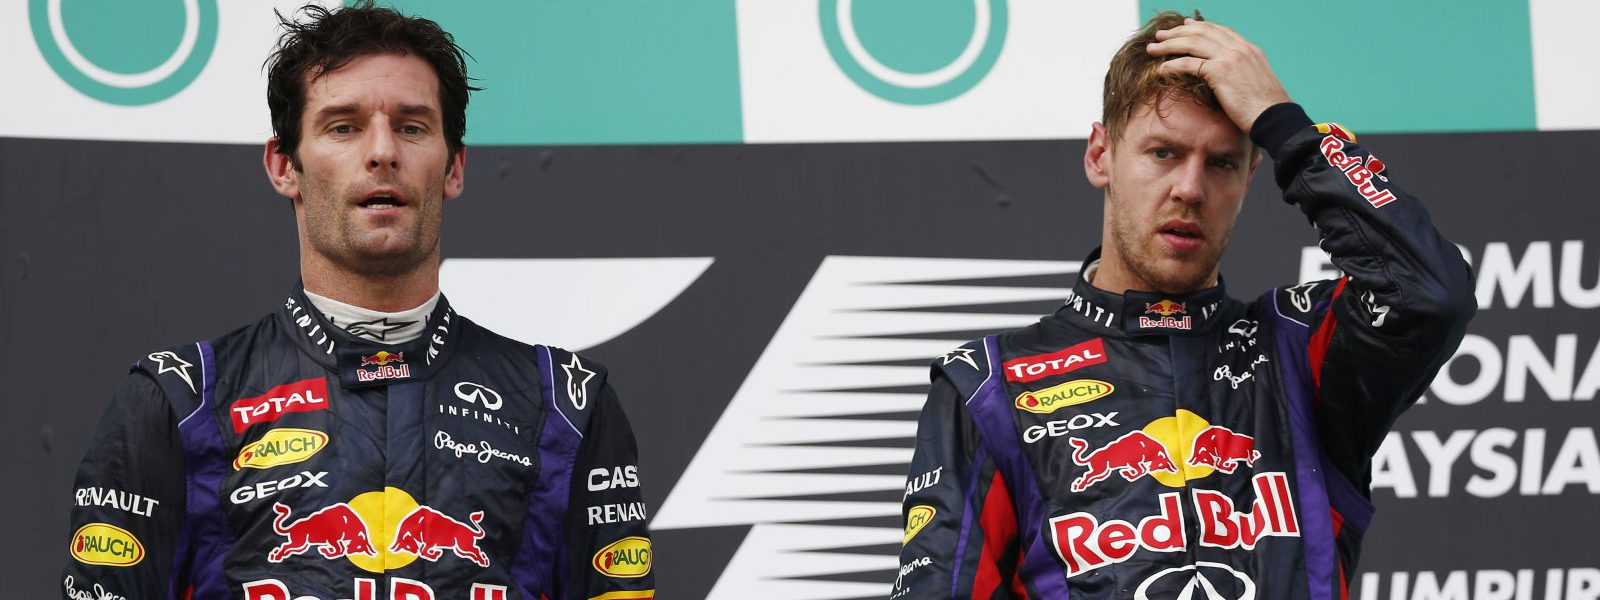 Motorsports: FIA Formula One World Championship 2013, Grand Prix of Malaysia,  #2 Mark Webber (AUS, Infiniti Red Bull Racing), #1 Sebastian Vettel (GER, Infiniti Red Bull Racing),  *** Local Caption *** +++ www.hoch-zwei.net +++ copyright: HOCH ZWEI +++